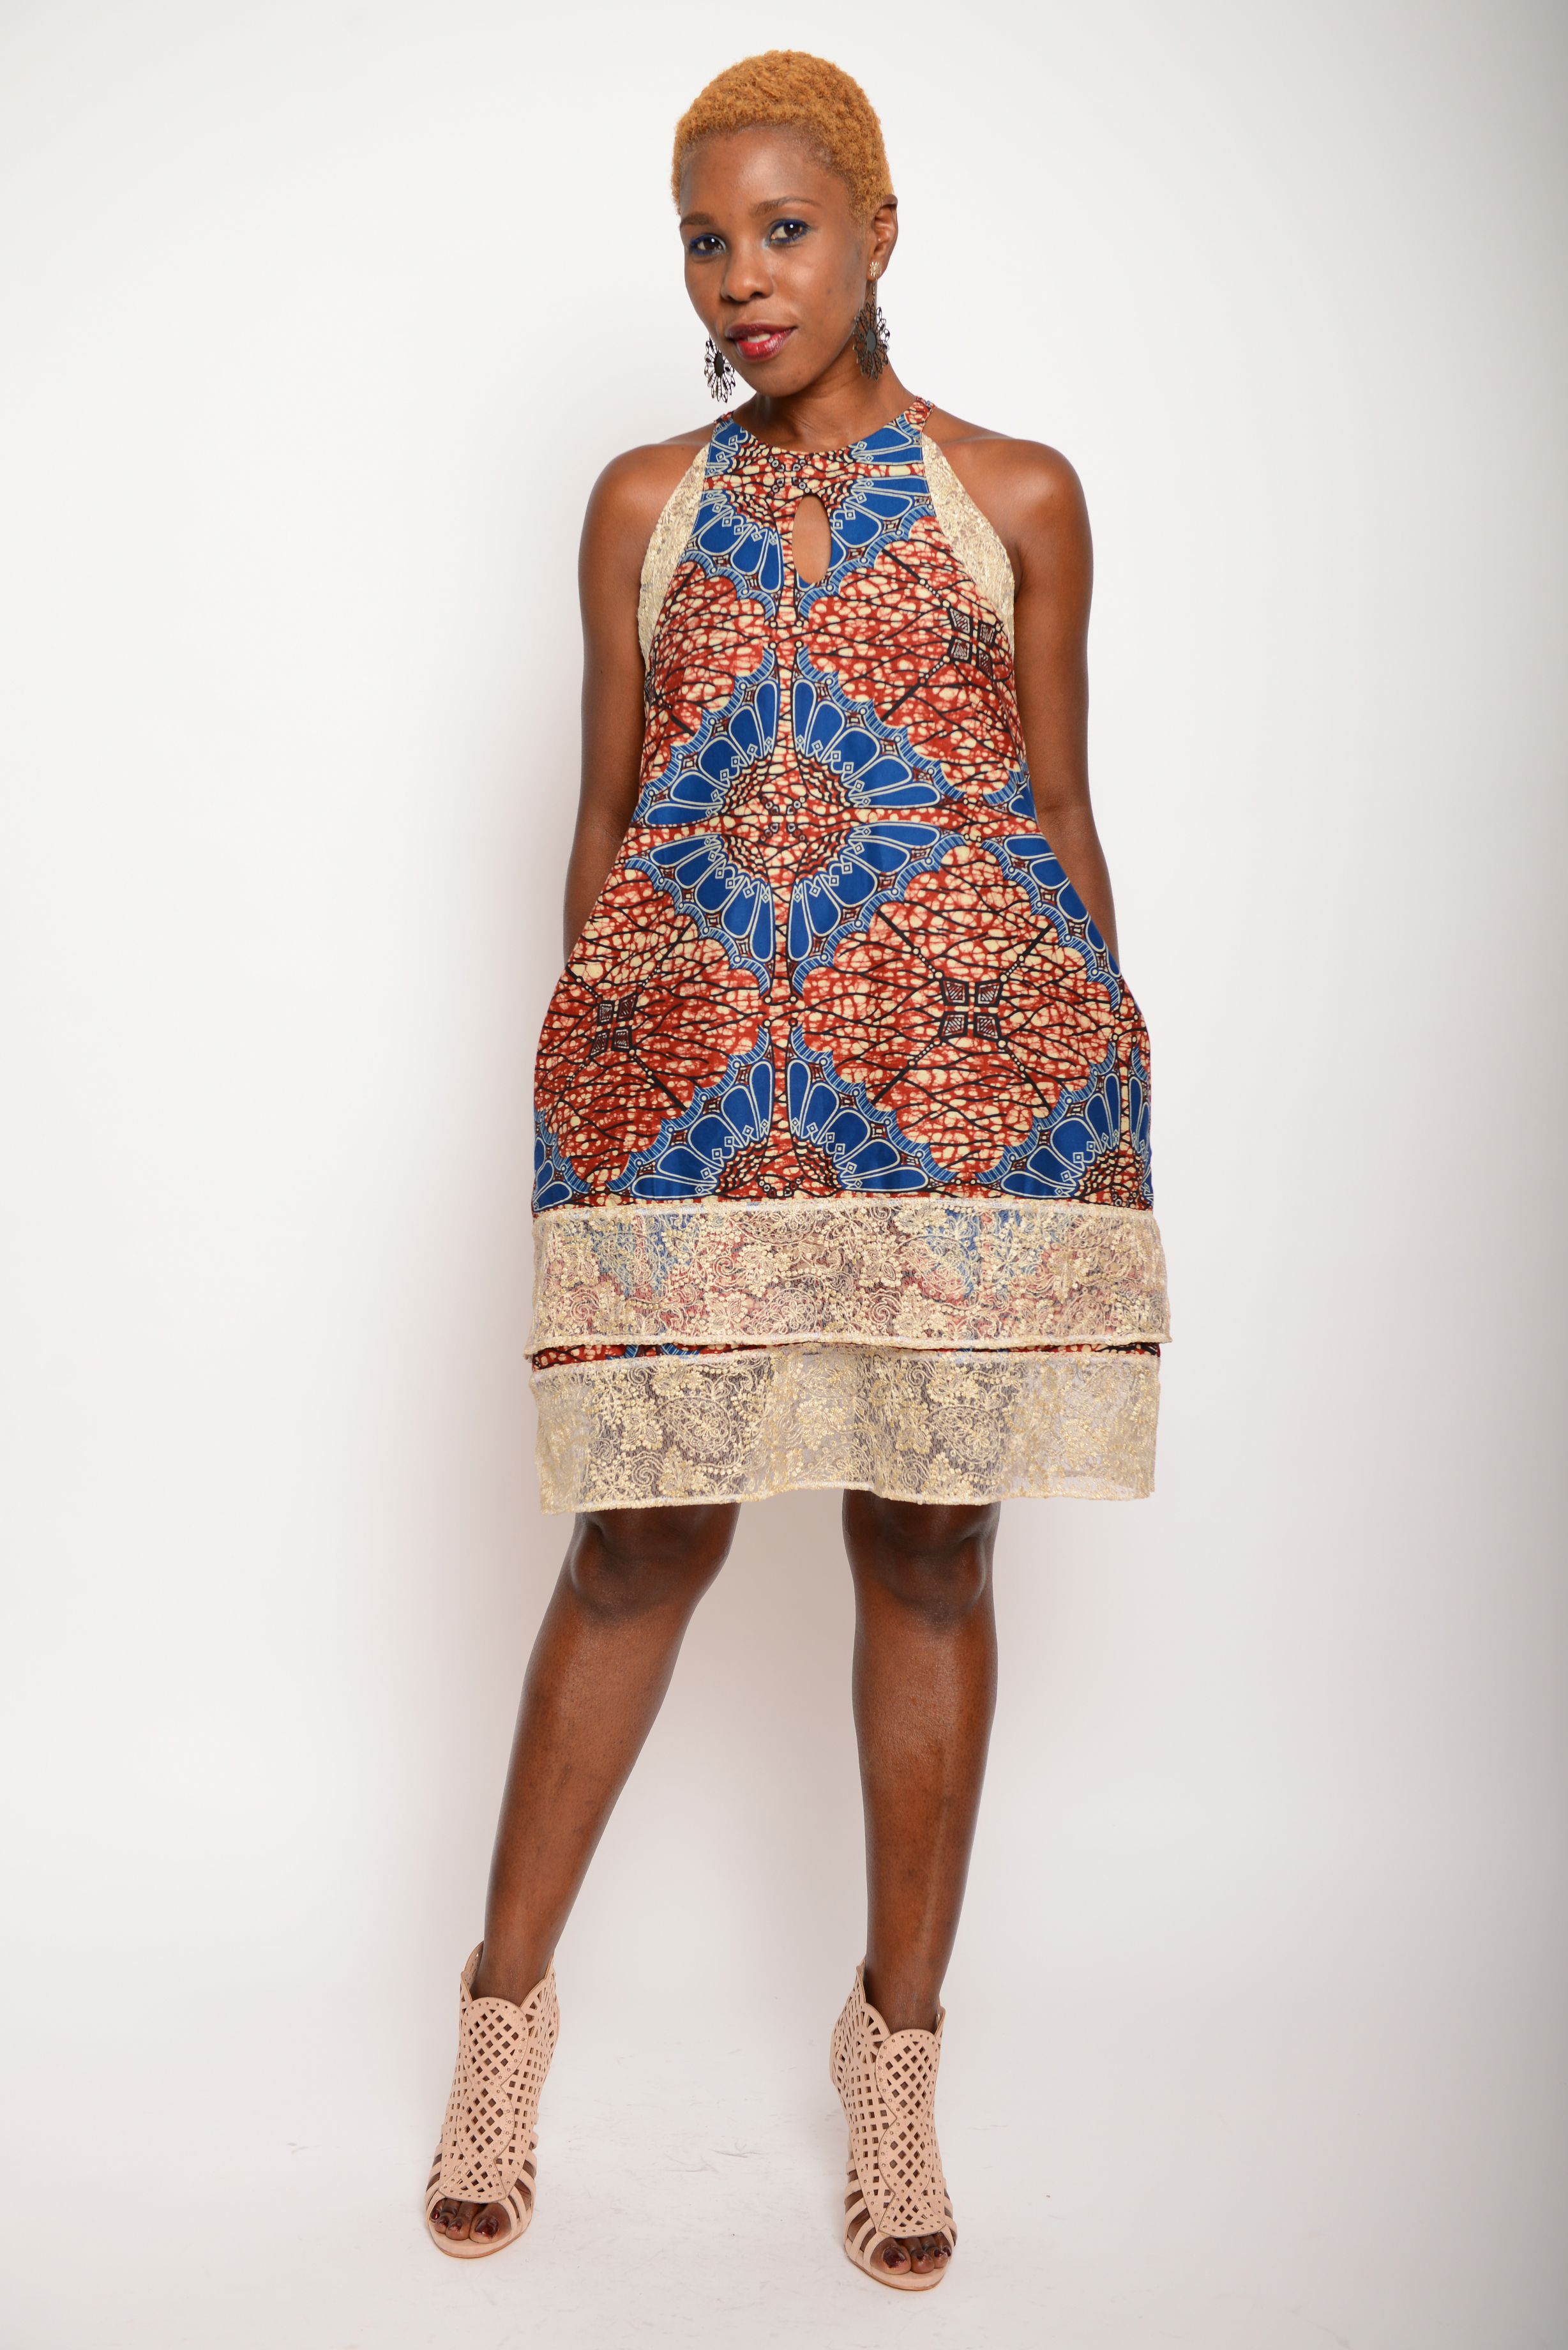 plus de photos 7dc38 0a25a Africaine Couture - Robe Africaine - Afrika Mode - Euge-W ...